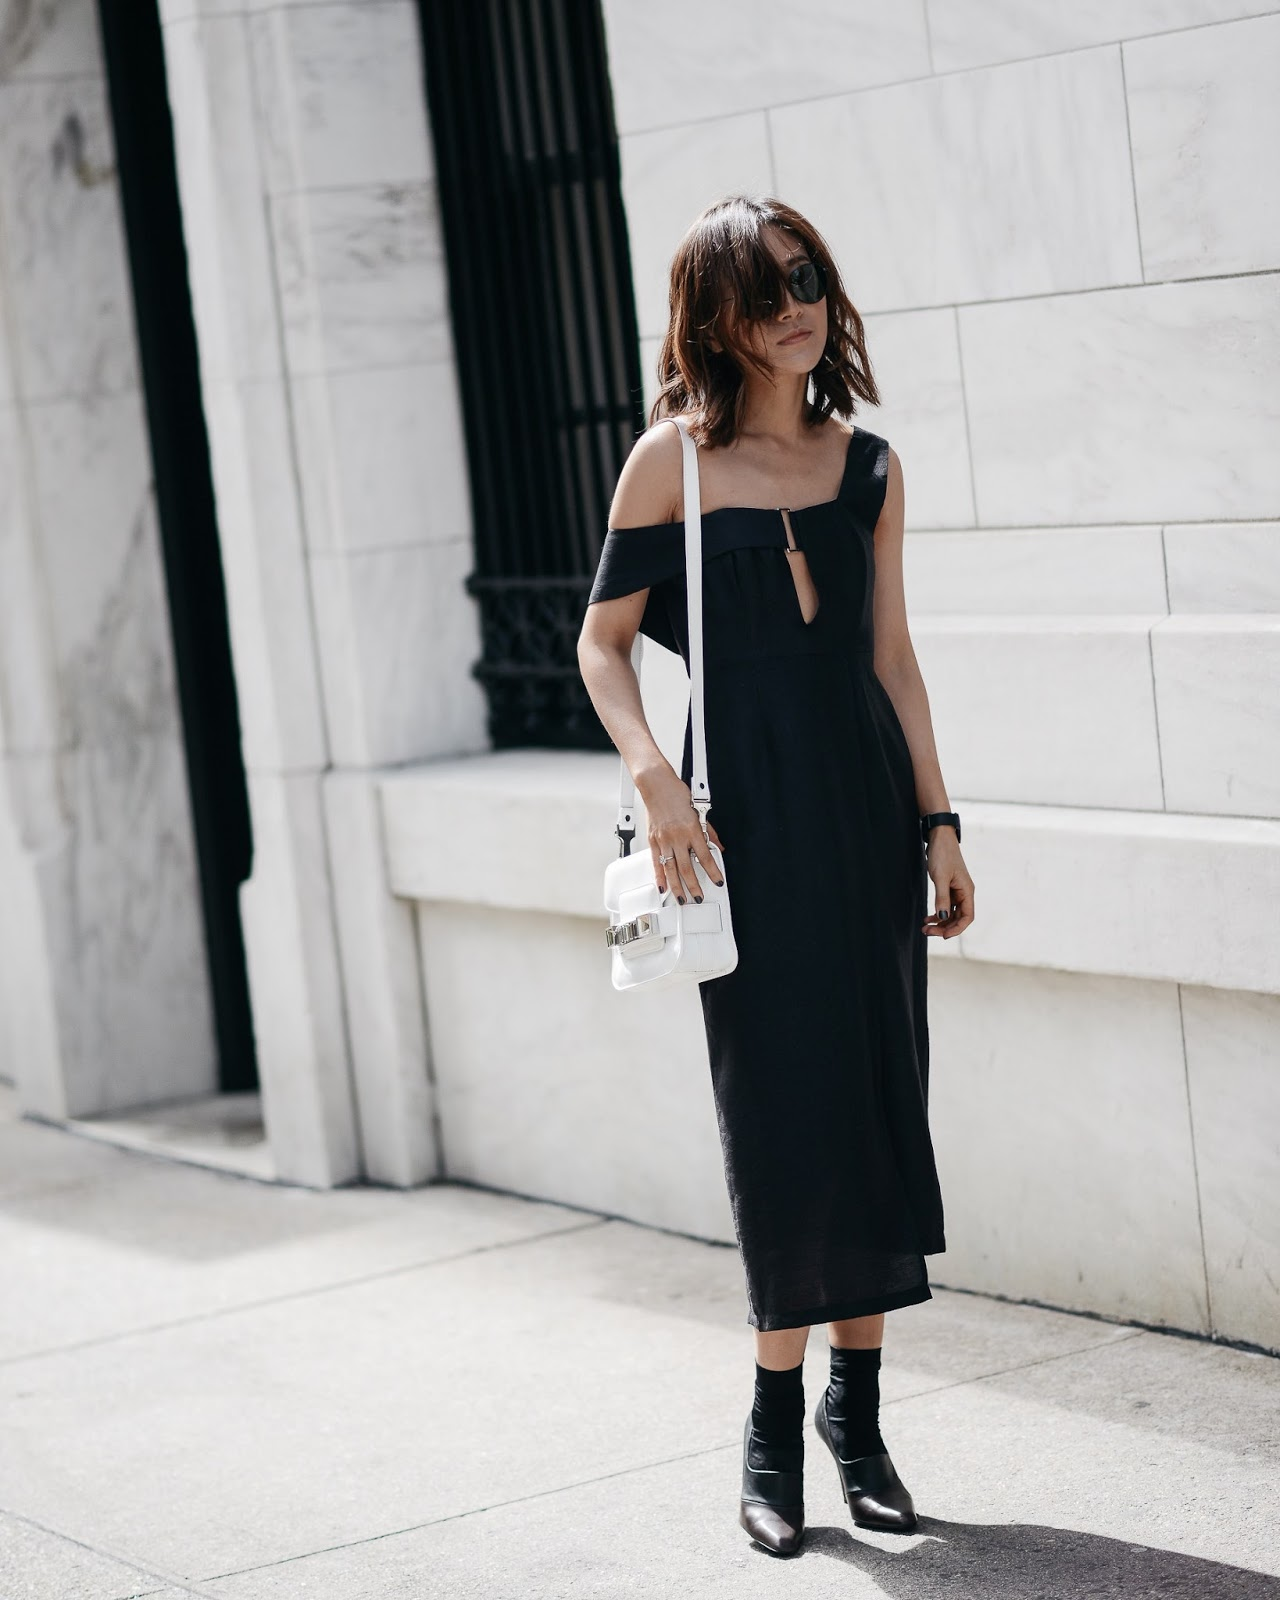 91ddfcc41dc Diana Z Wang is looking striking in this ultra elegant off the shoulder  black midi dress